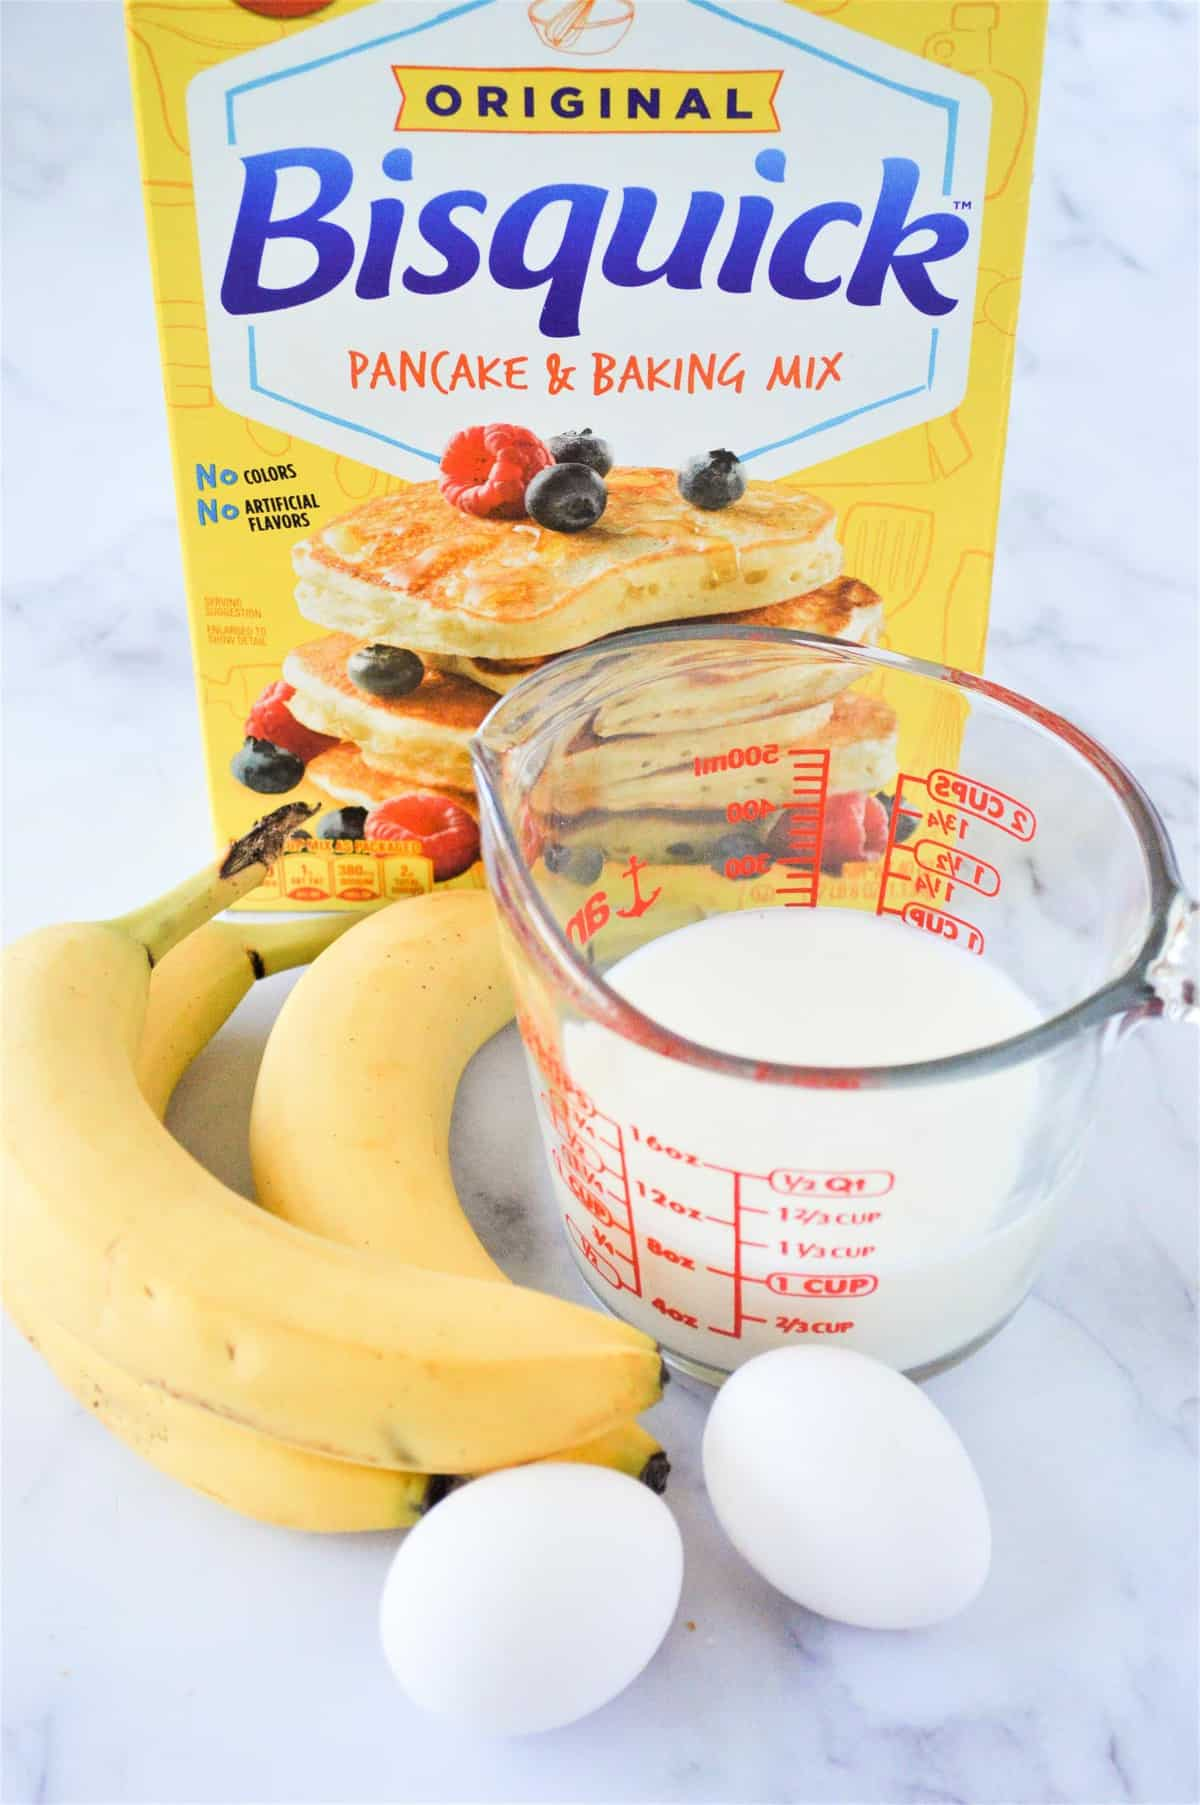 Three bananas, two eggs, milk in measuring cup, and a box of bisquick.